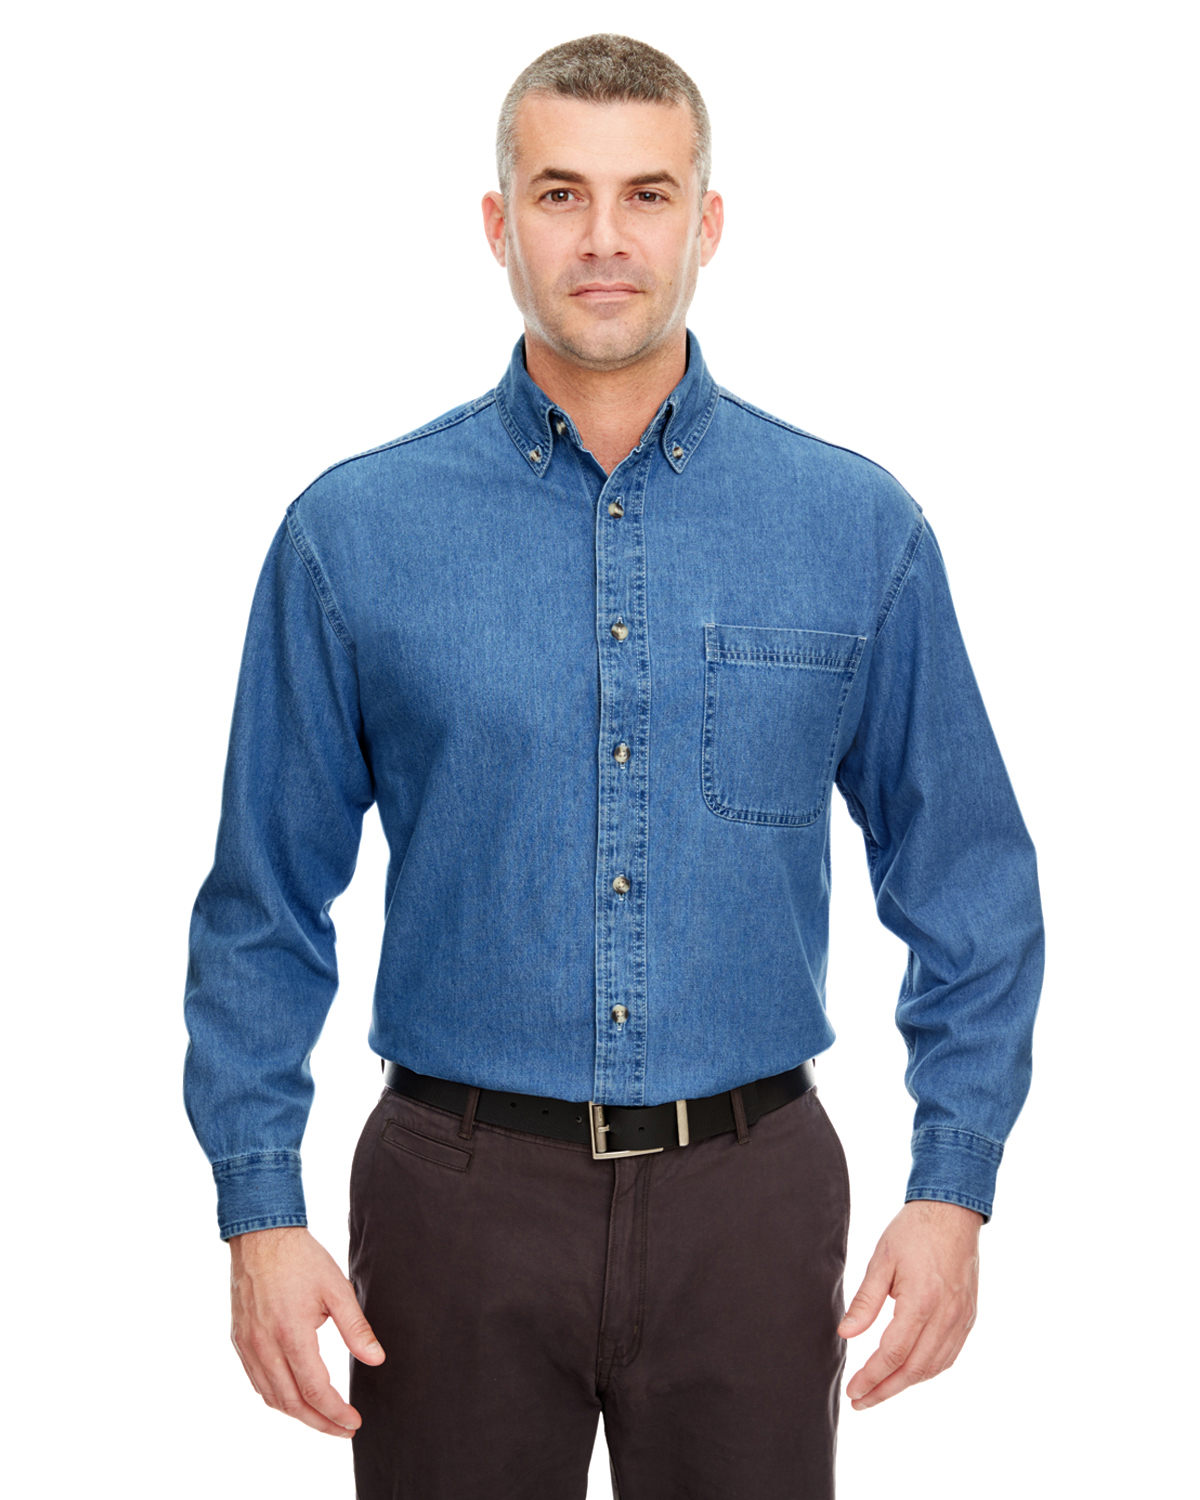 Men's Tall Cypress Denim with Pocket